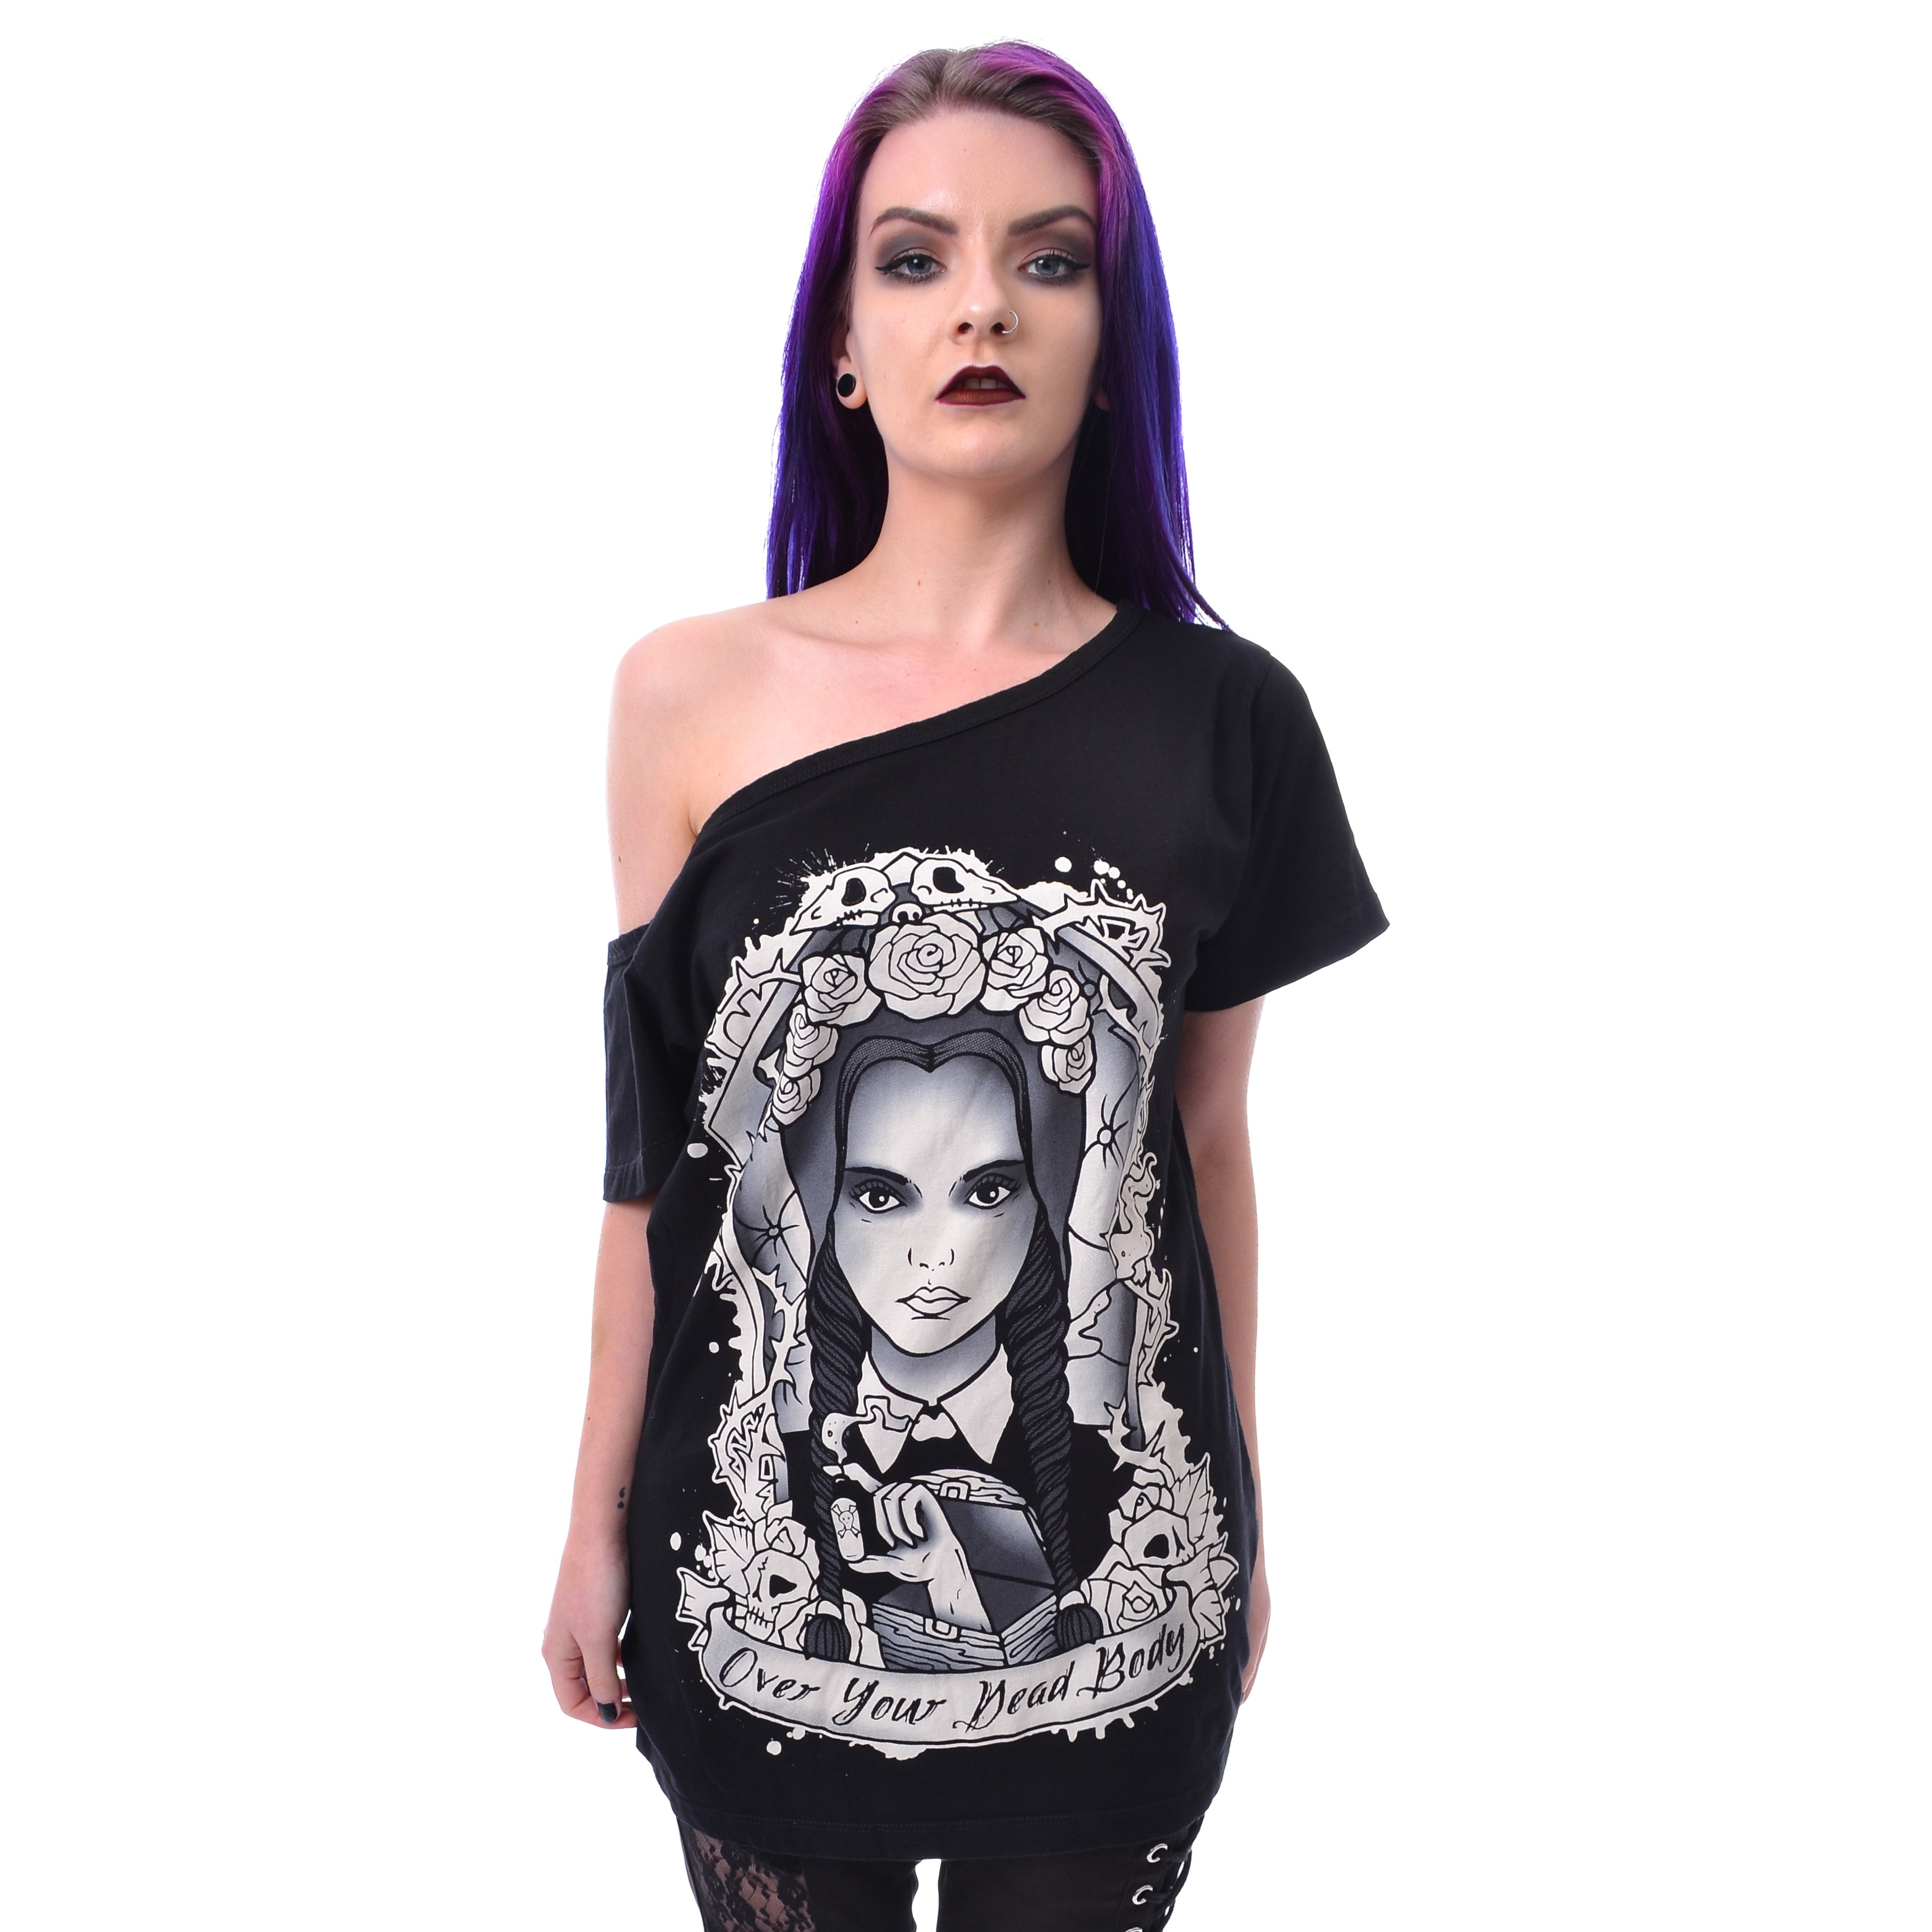 HEARTLESS - OVER YOUR DEAD BODY TOP LADIES BLACK